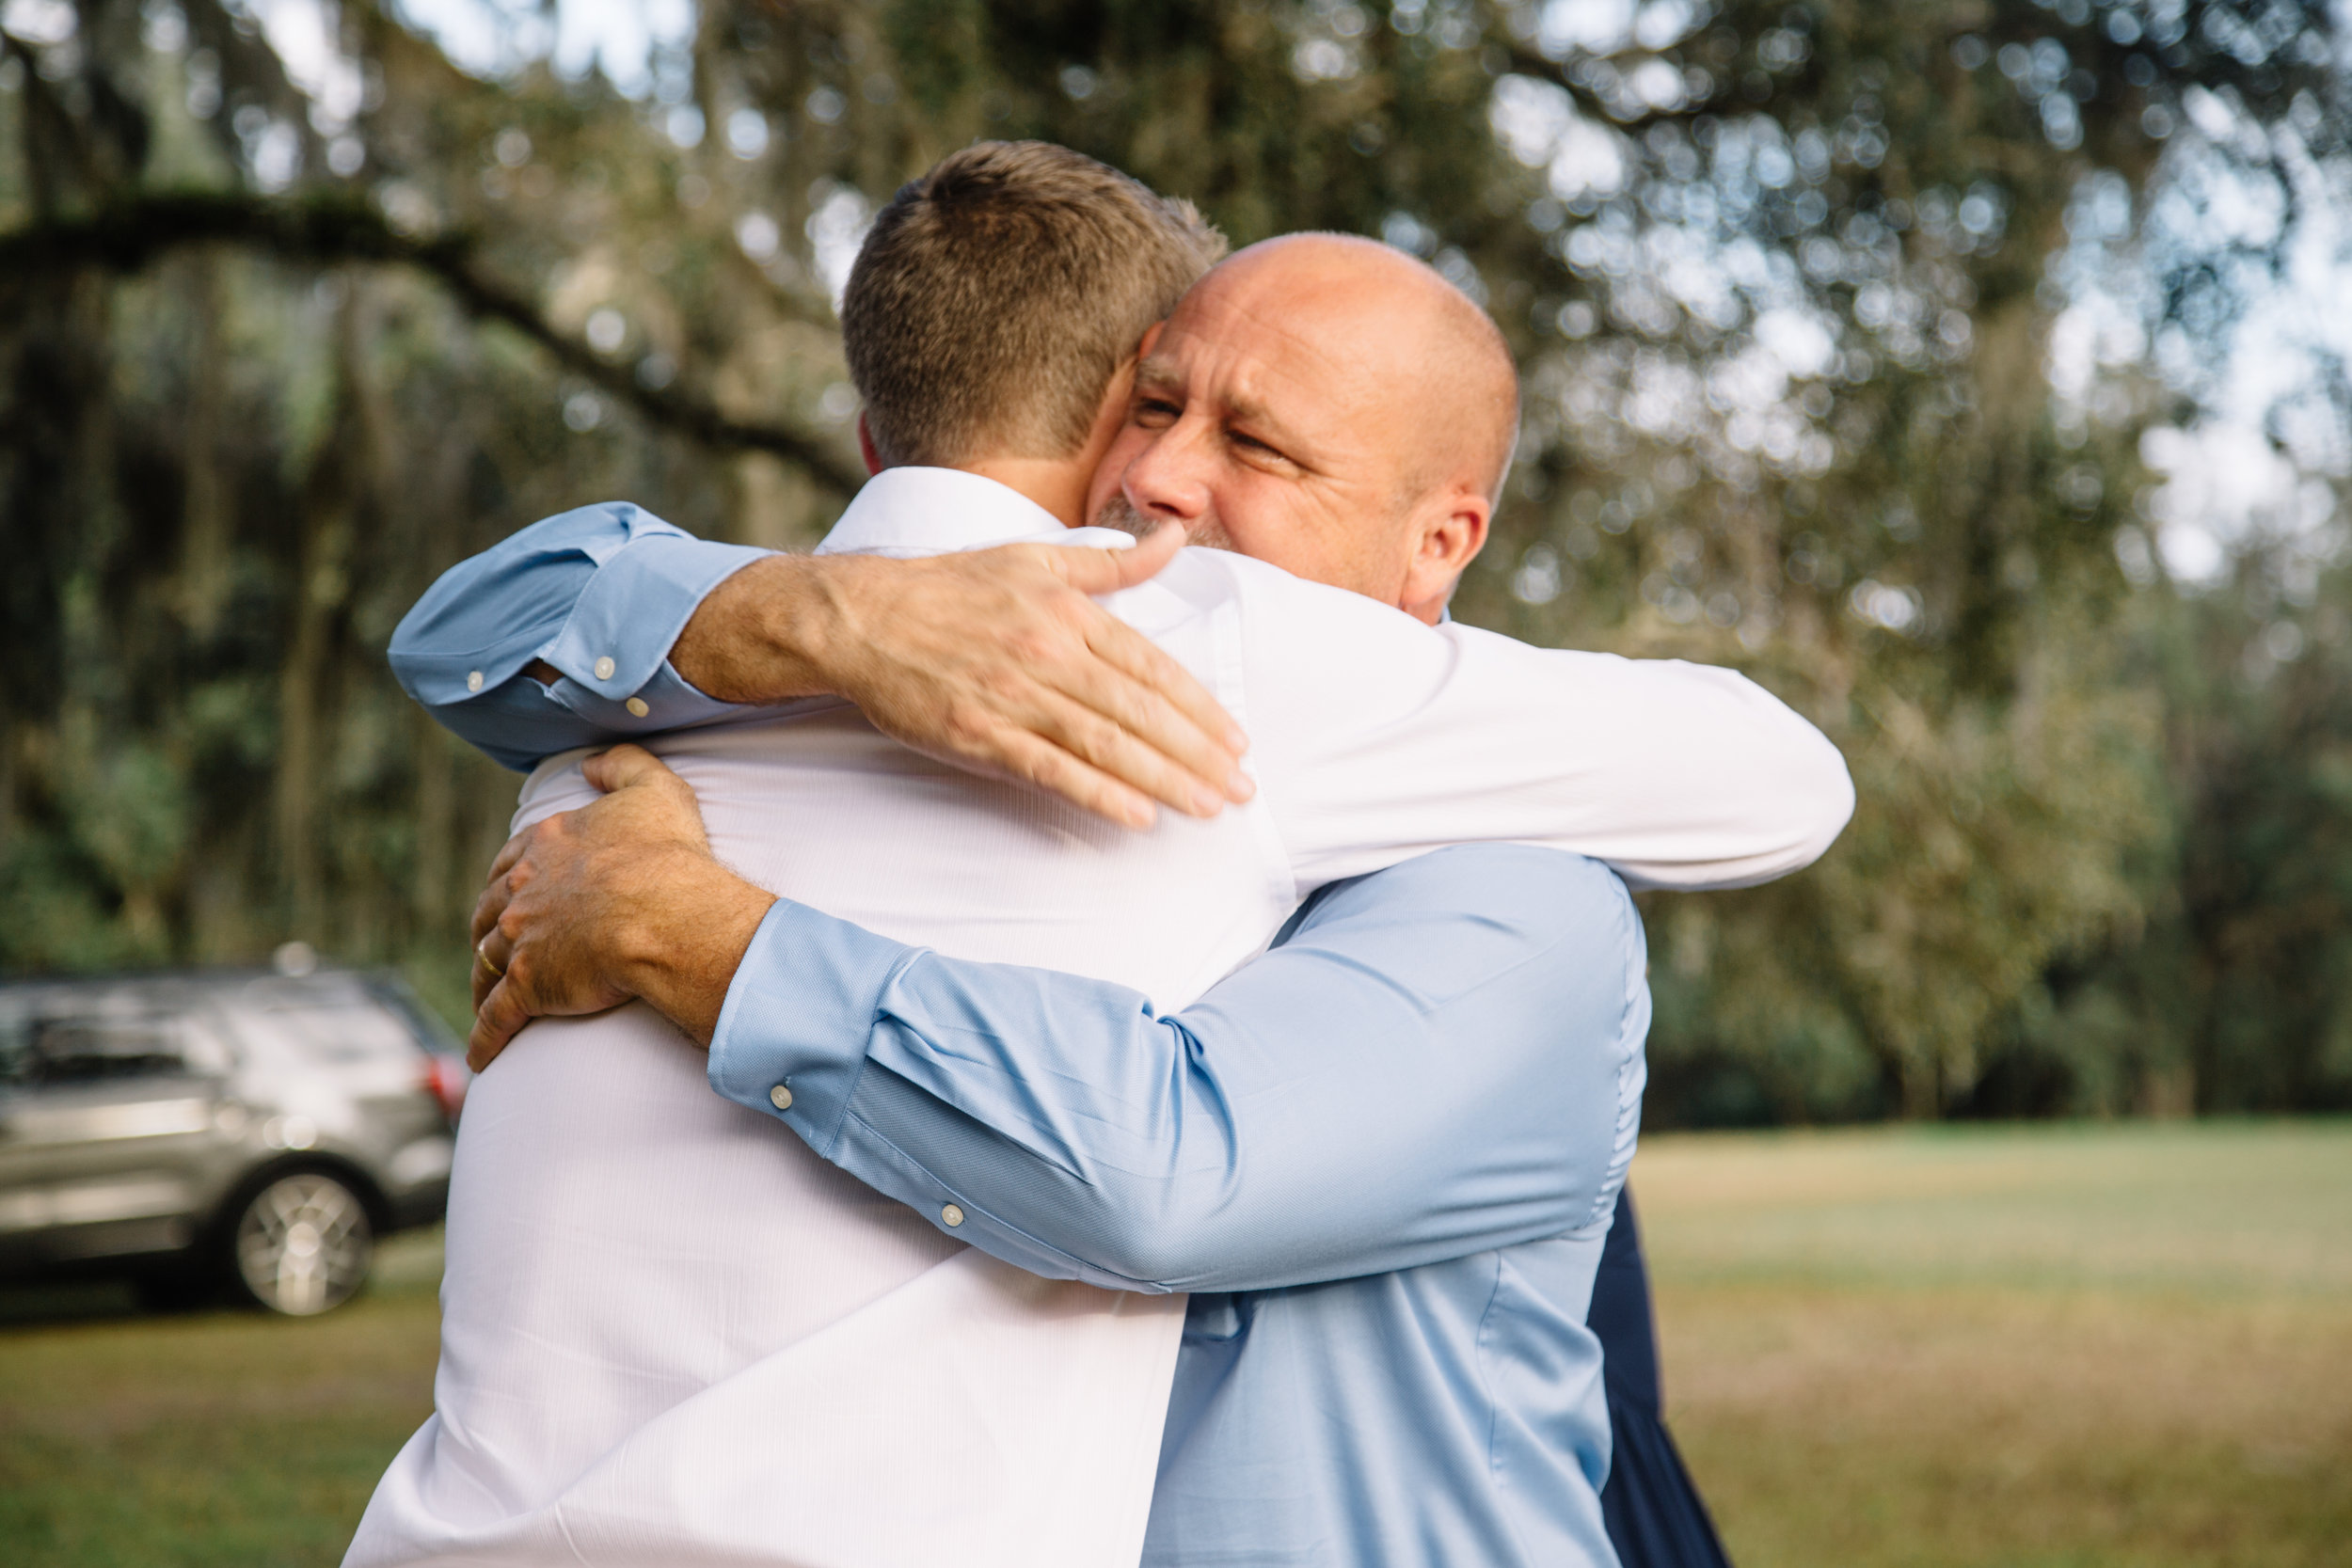 A father's joy for his son | Brooksville, Florida